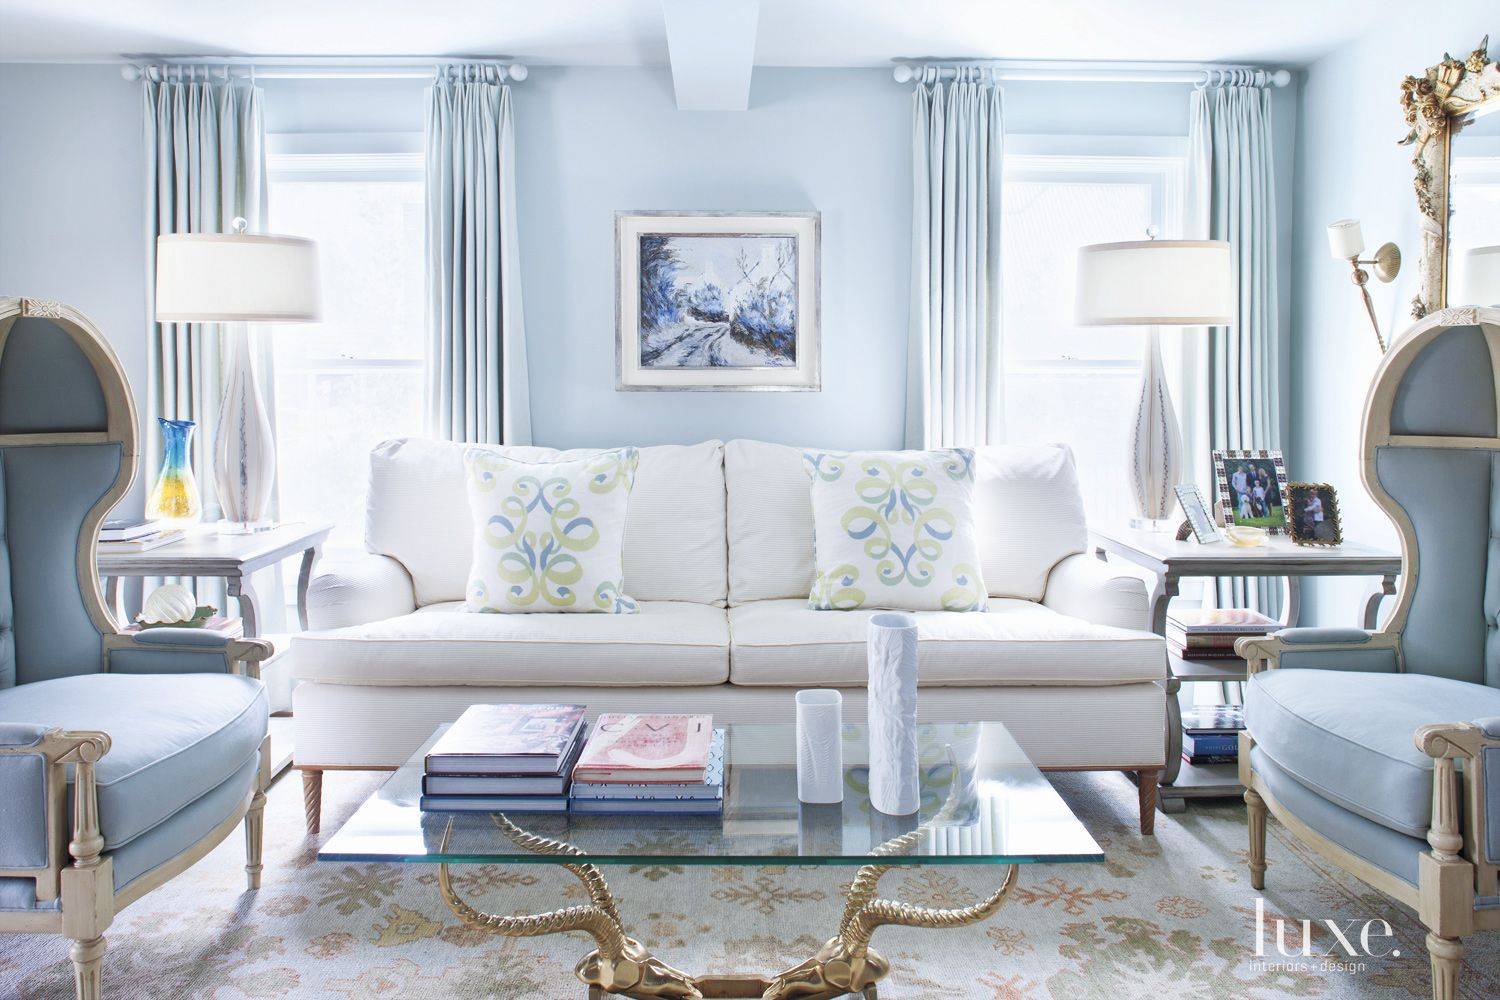 Calm Blue Living Room with Traditional Decor